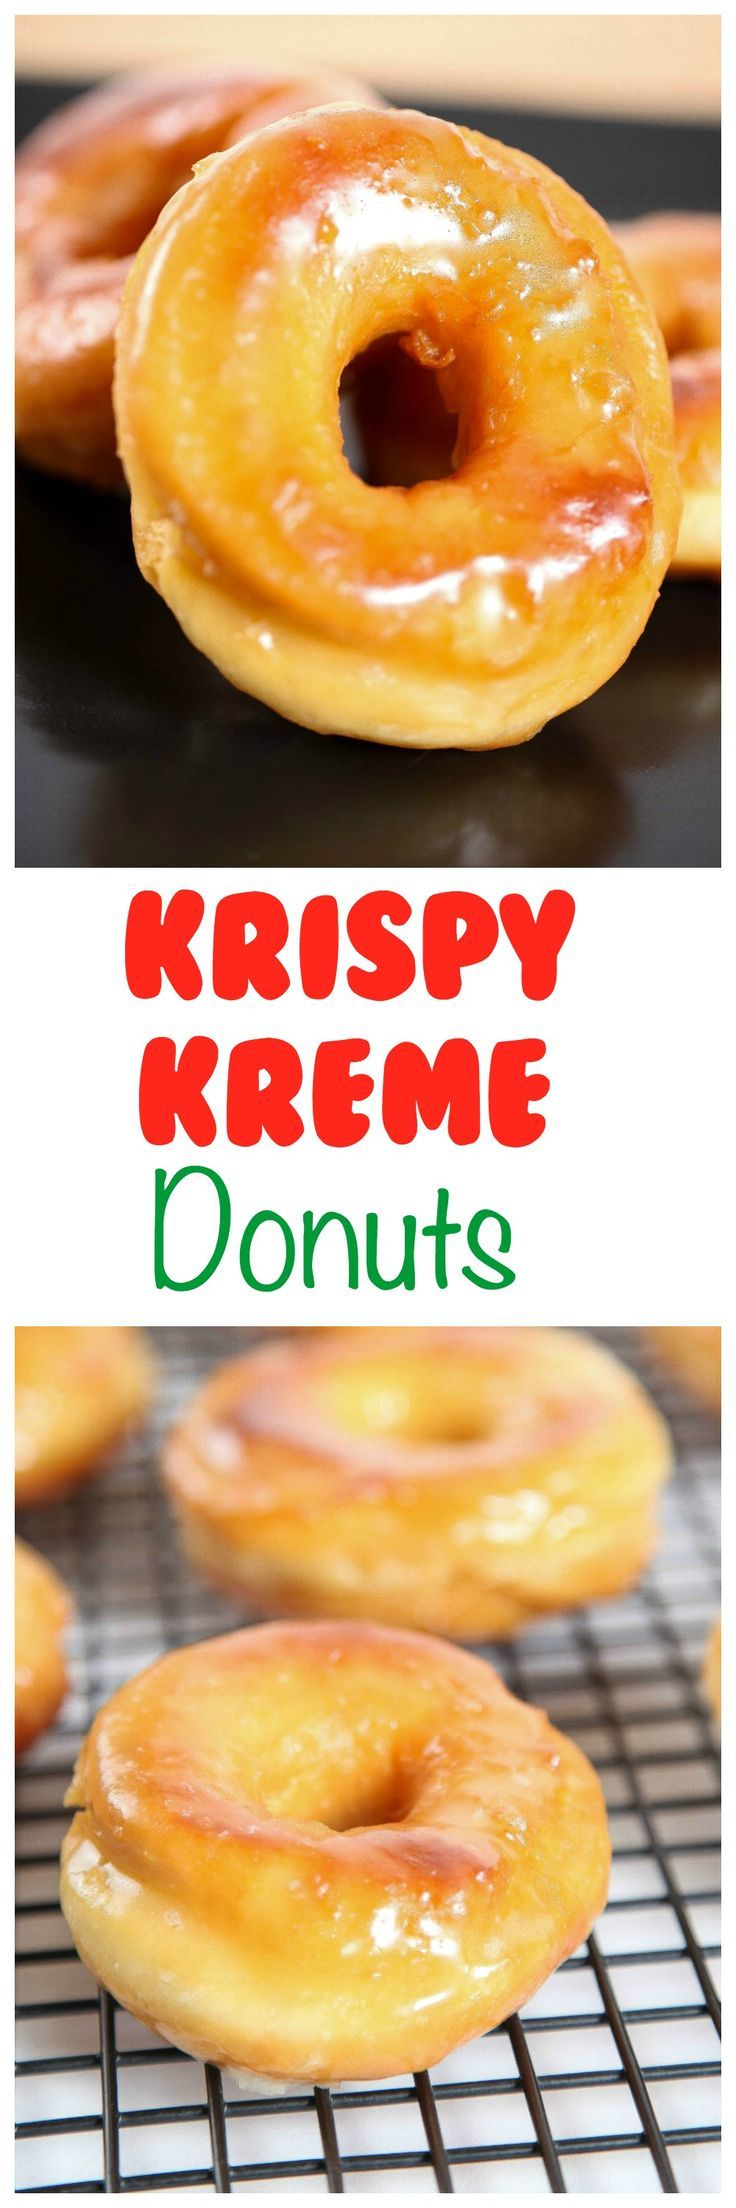 Krispy Kreme Donut Recipe: Light and fluffy donuts topped with a rich glaze that will melt in your mouth. Enjoy Krispy Kreme for a fraction of the cost with this spot on recipe.